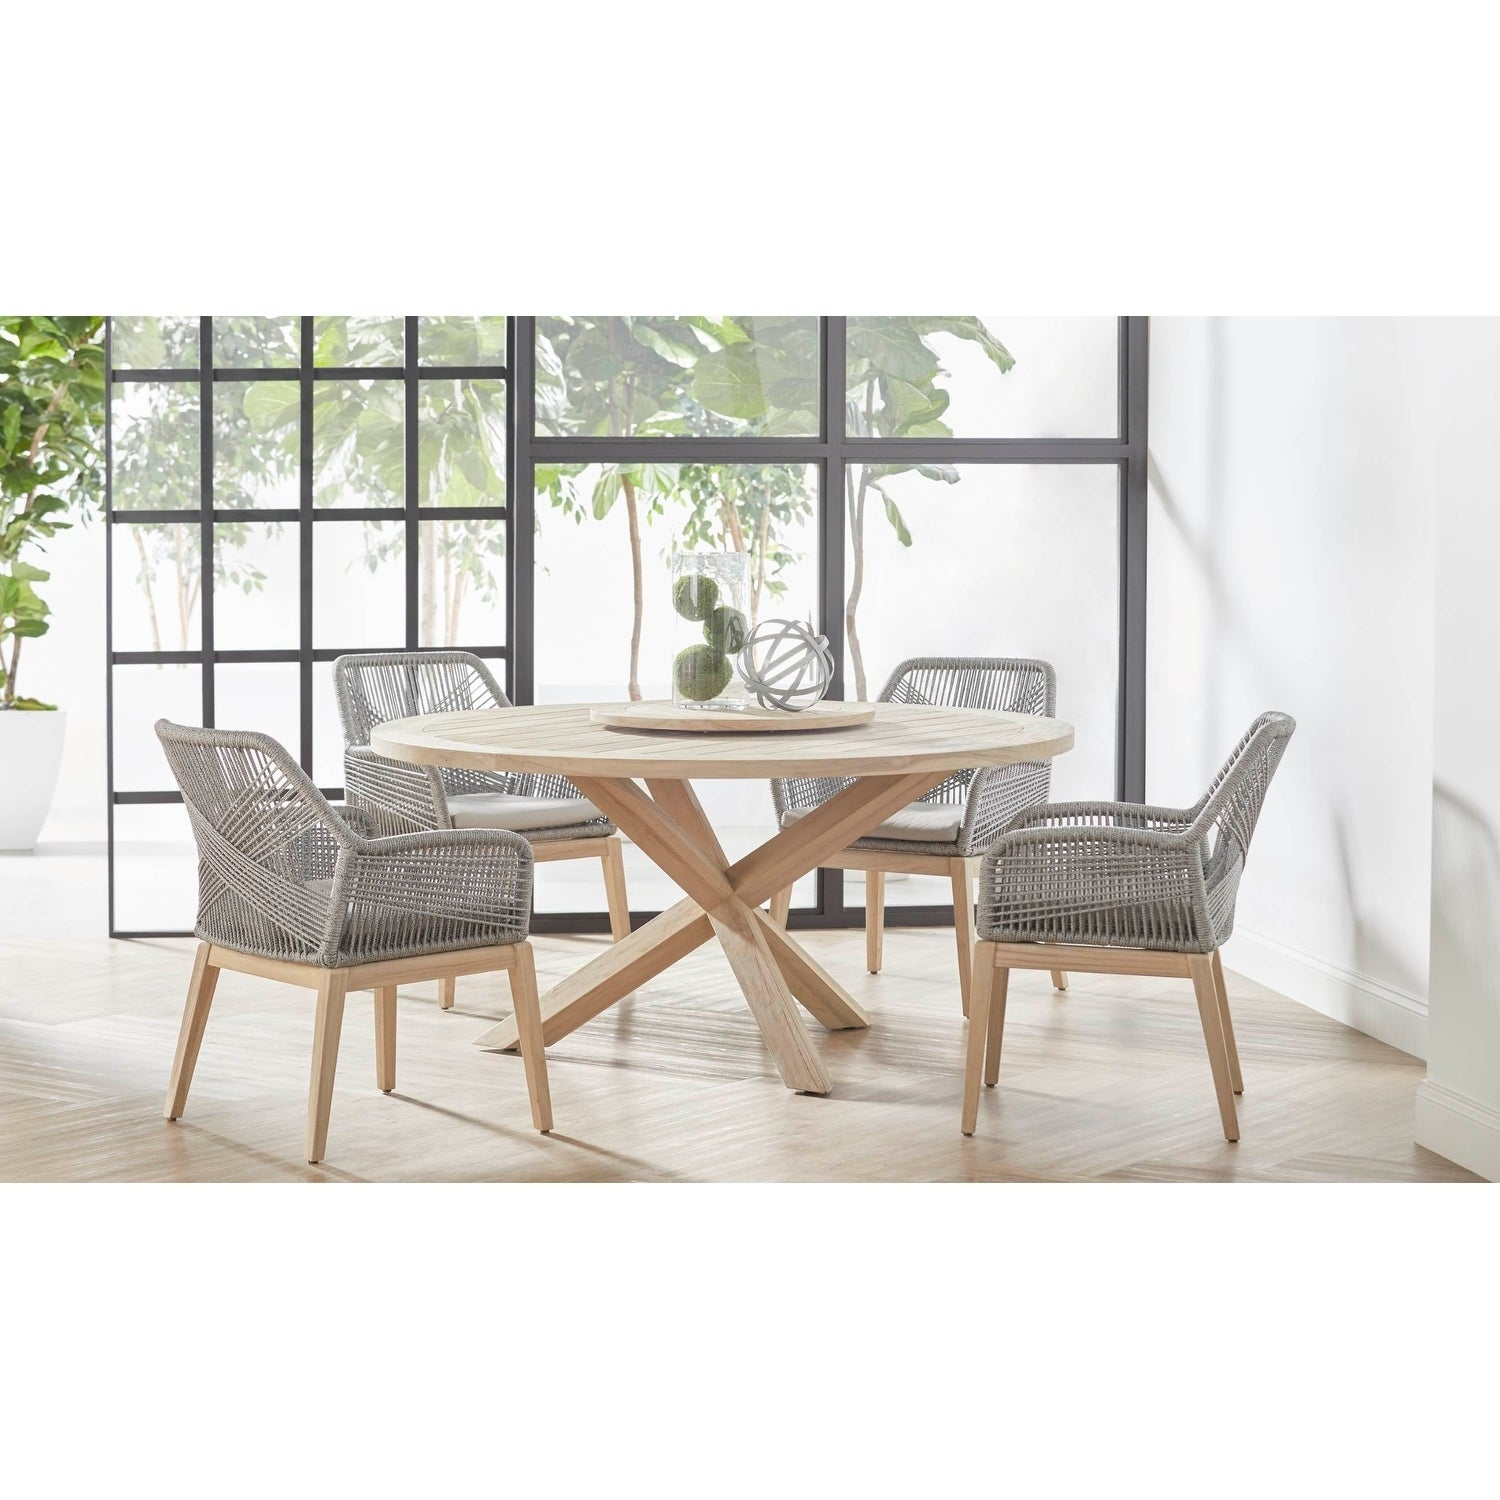 Curtis Platinum Rope Arm Chair (Set of 2) - Free Shipping Today ...